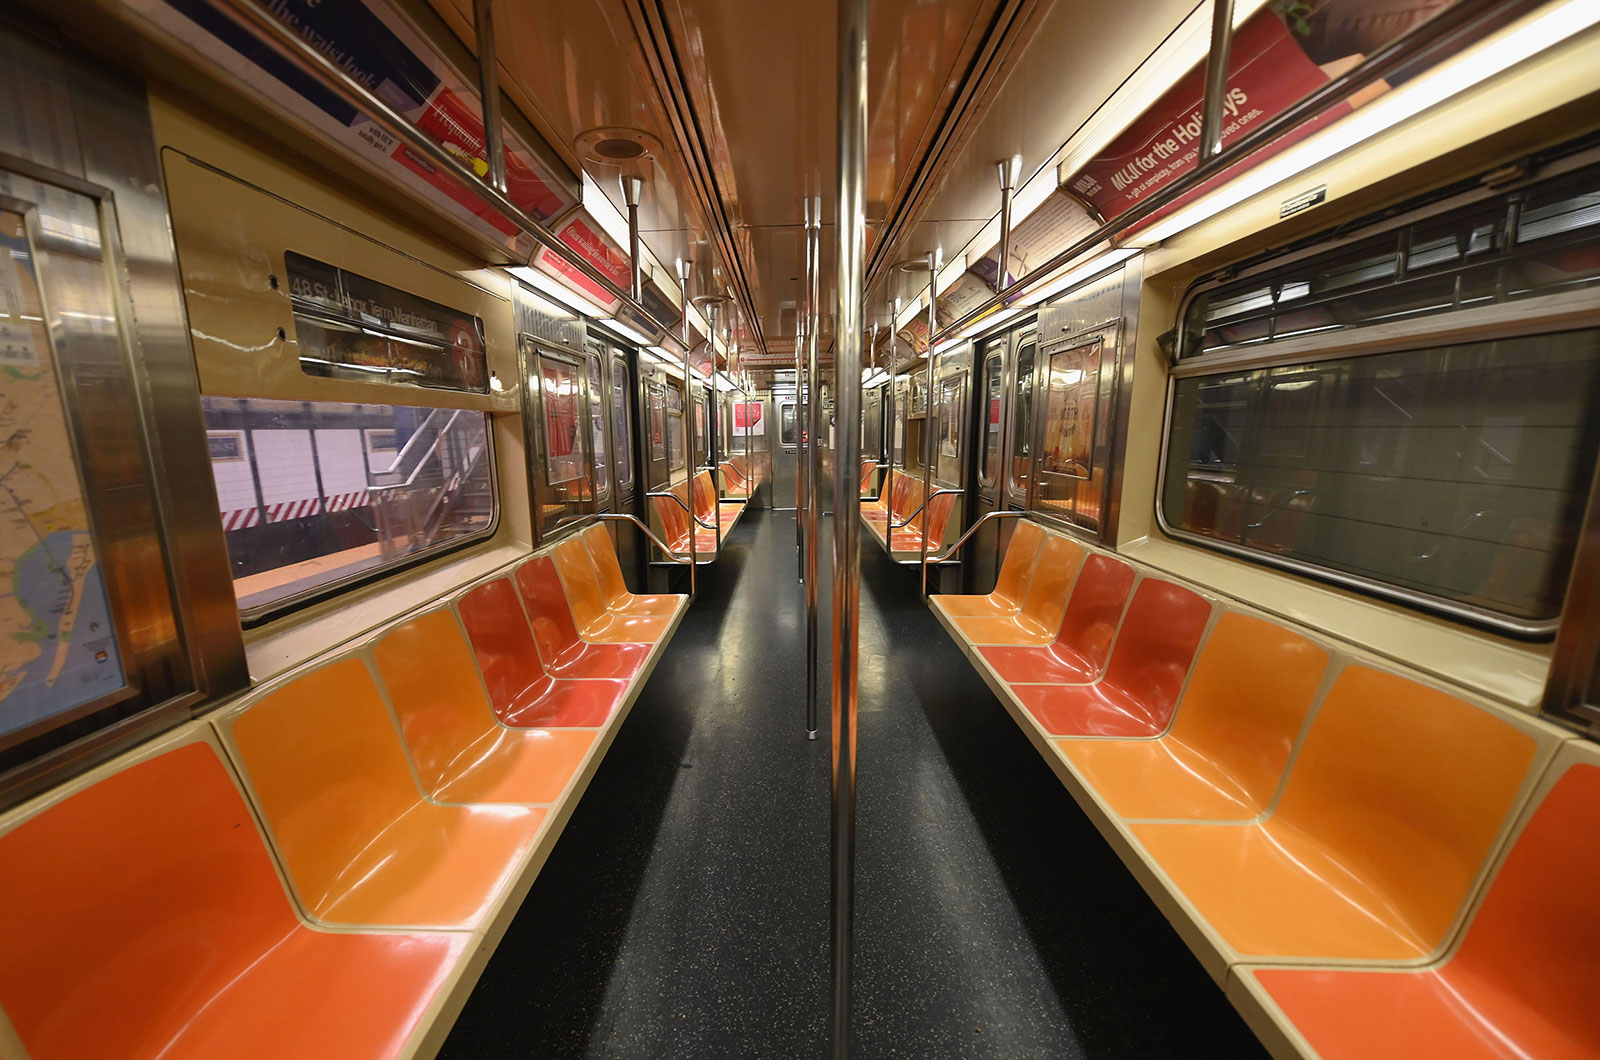 An empty subway car is seen on March 23, 2020 in New York City. - Wall Street fell early March 23, 2020 as Congress wrangled over a massive stimulus package while the Federal Reserve unveiled new emergency programs to boost the economy including with unlimited bond buying. About 45 minutes into trading, the Dow Jones Industrial Average was down 0.6 percent at 19,053.17, and the broad-based S&P 500 also fell 0.6 percent to 2,290.31 after regaining some ground lost just after the open. (Photo by Angela Weiss / AFP) (Photo by ANGELA WEISS/AFP via Getty Images)